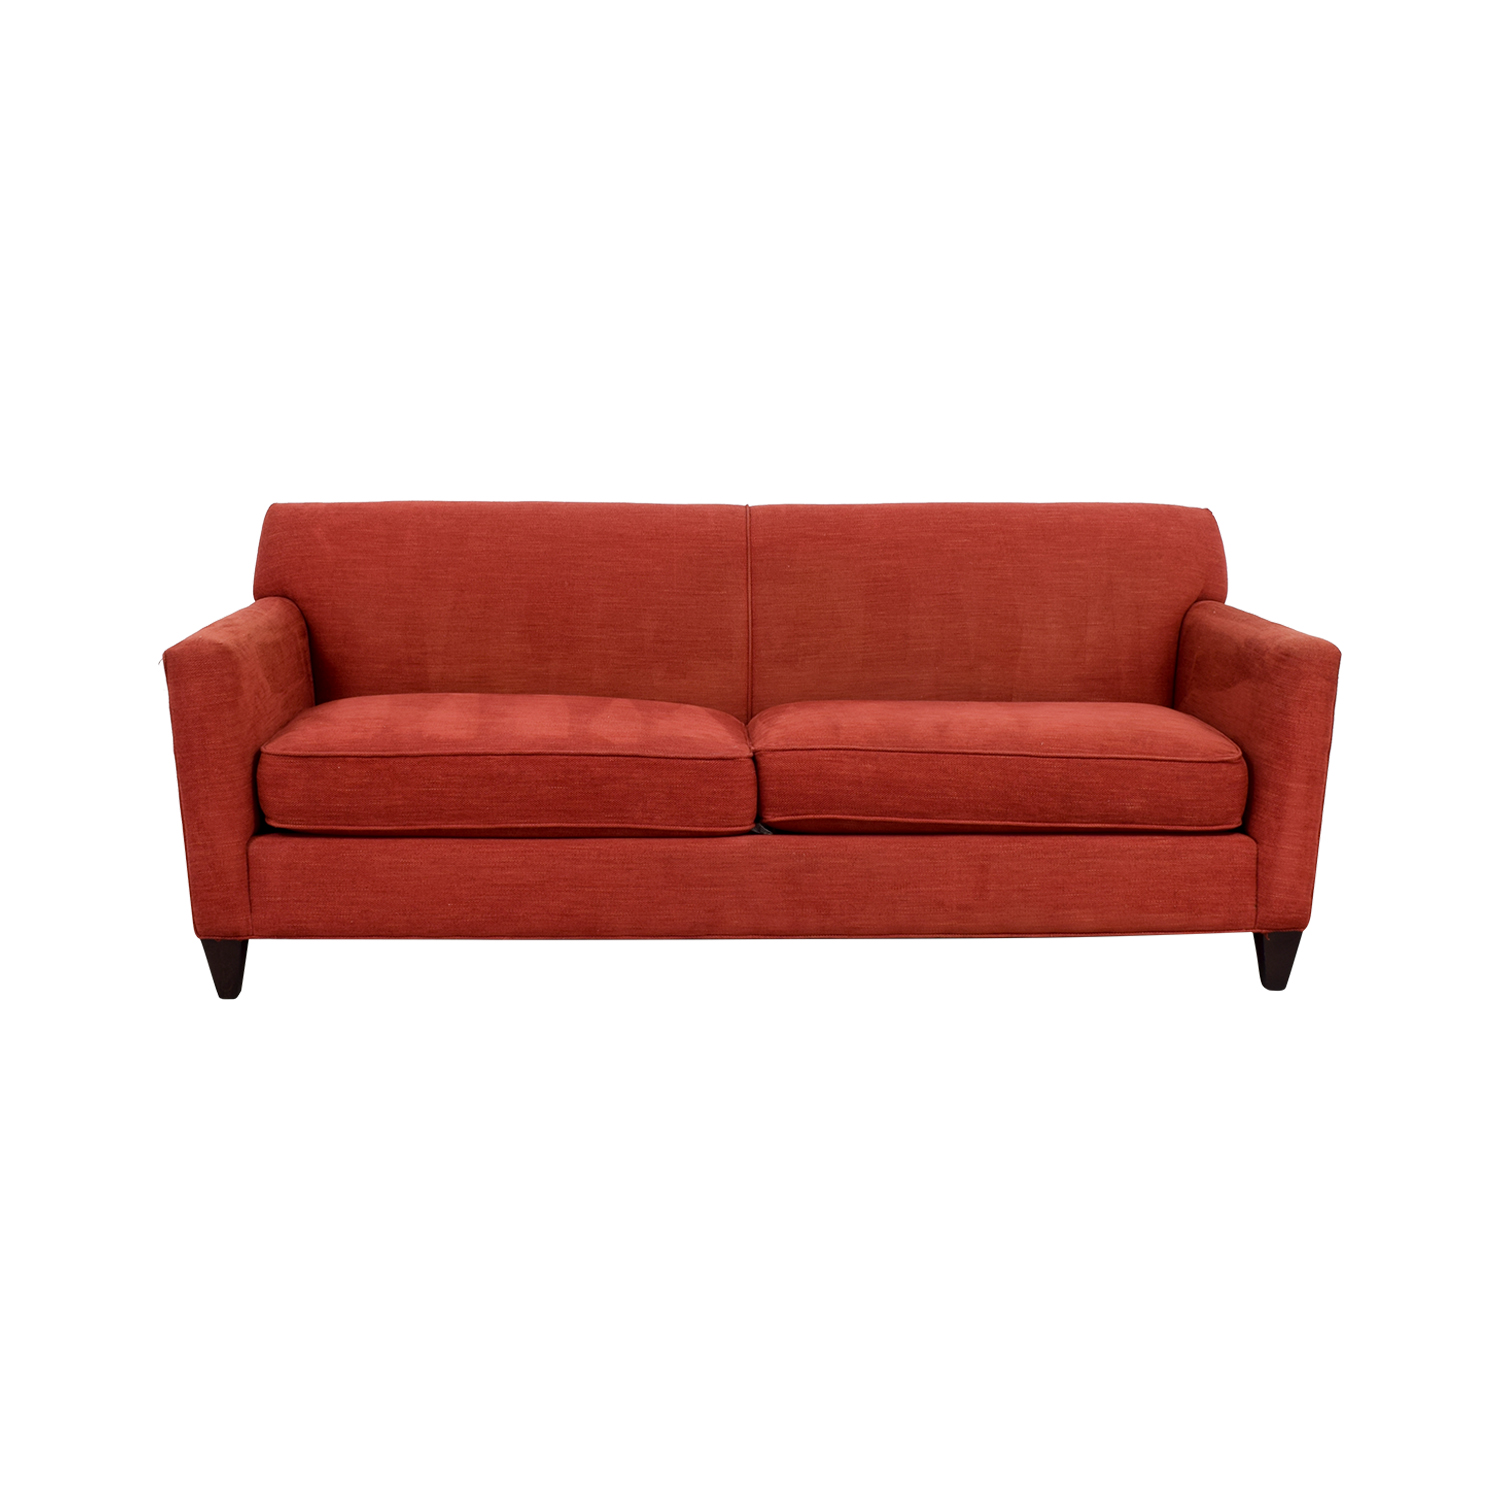 buy Crate & Barrel Cardinal Red Hennessy Sofa Crate & Barrel Sofas